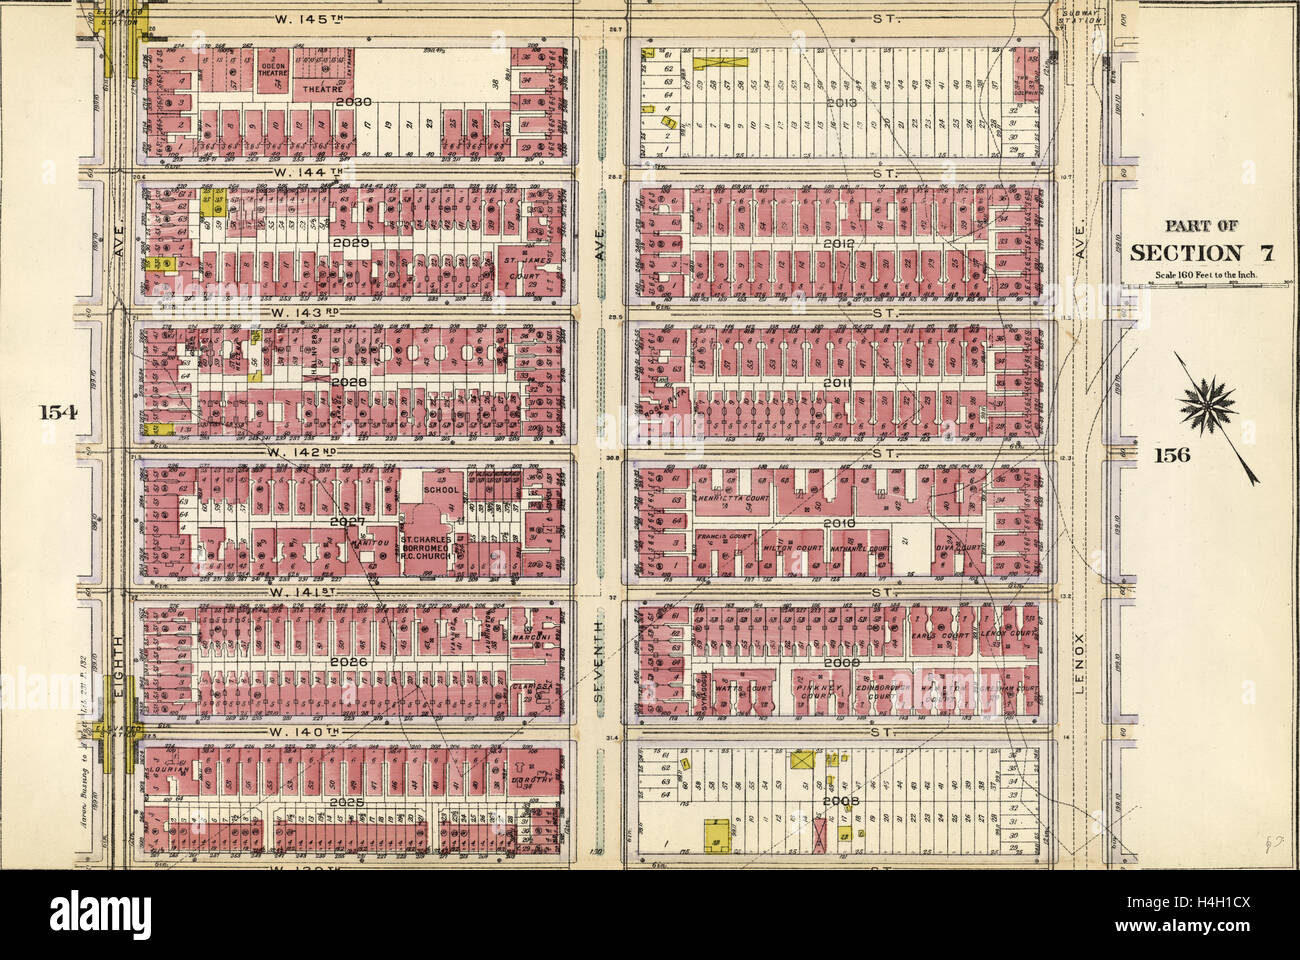 Plate 155: Bounded by W. 145th Street, Lenox Avenue, W. 139th Street and Eighth Avenue, New York, USA - Stock Image